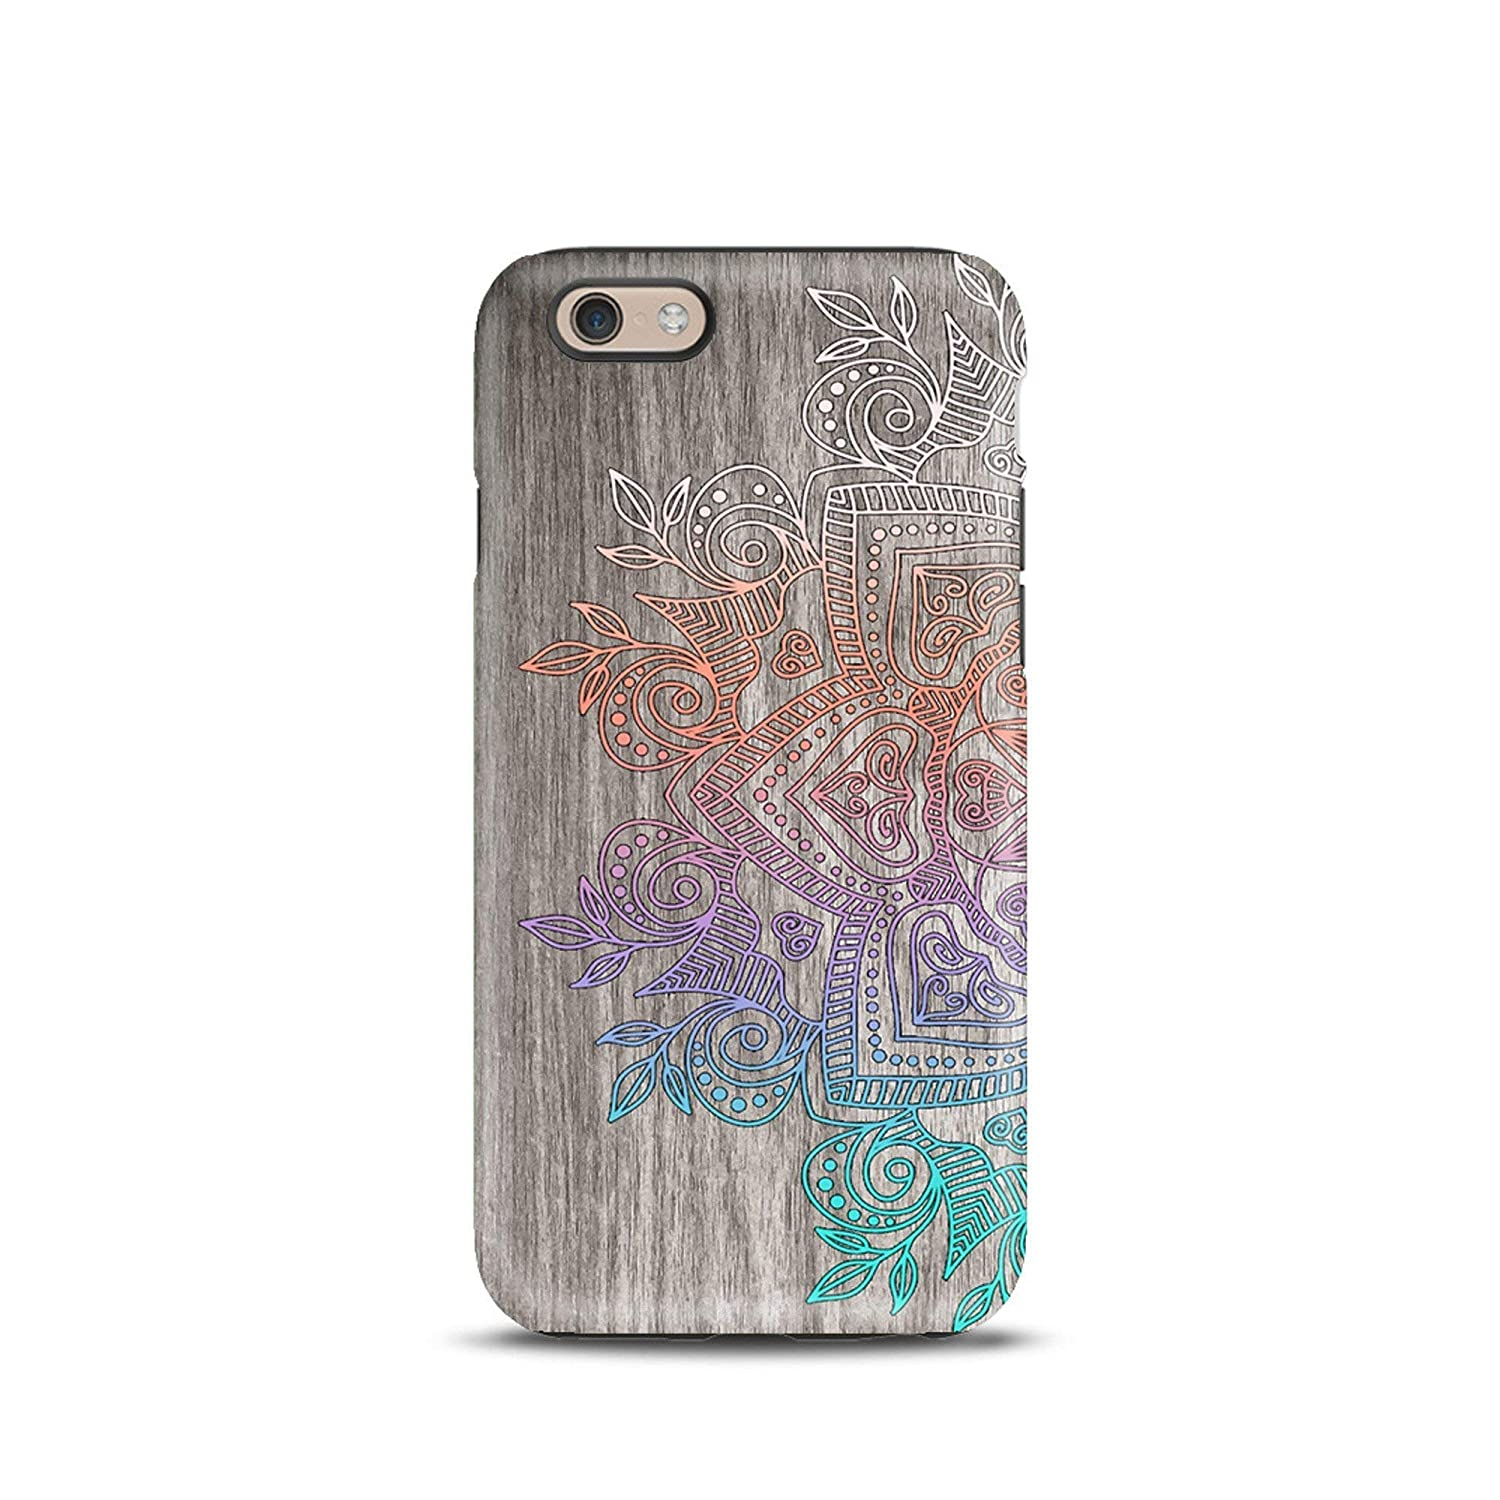 Mandala Wood Boho cover case TPU Tough for iPhone 5, 5s, 6, 6s, 7, 7 plus, 8, 8 plus, X, XS, for Galaxy S6, S7, S8